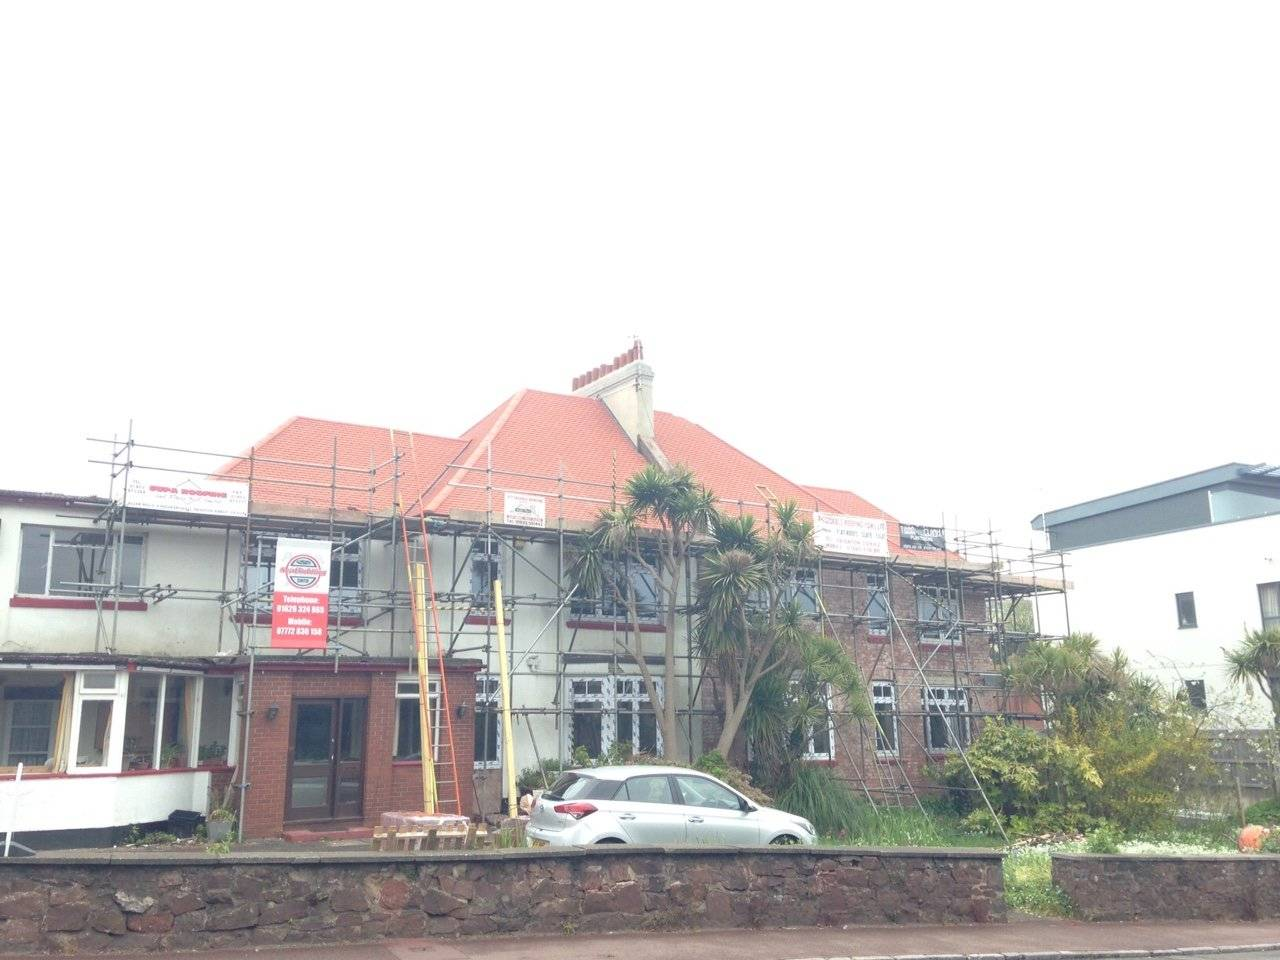 house having a new roof with scaffolding around the building